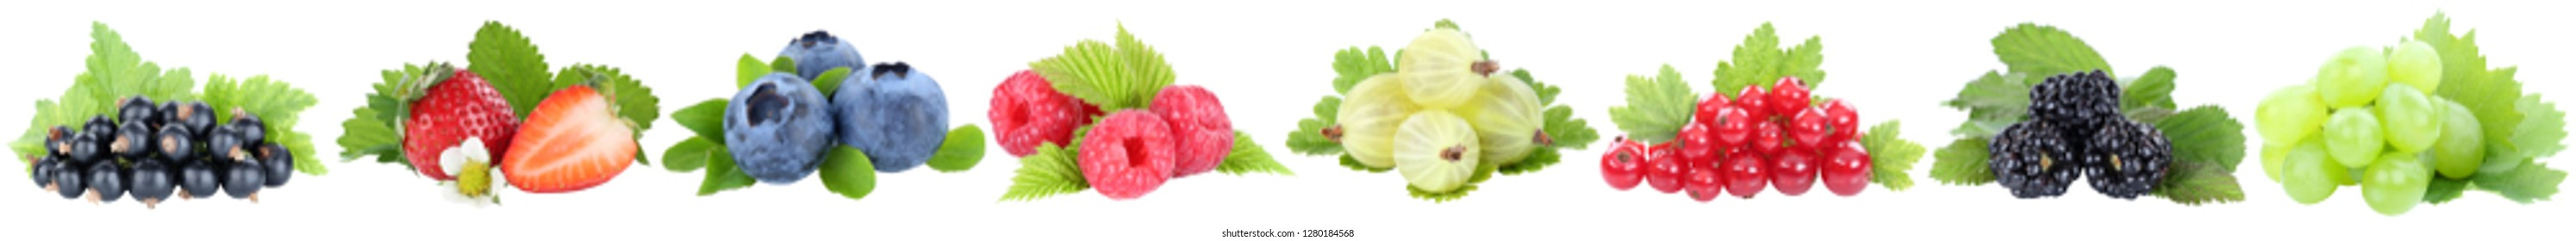 Collection of berries strawberries blueberries grapes berry fruits fruit in a row isolated on a white background